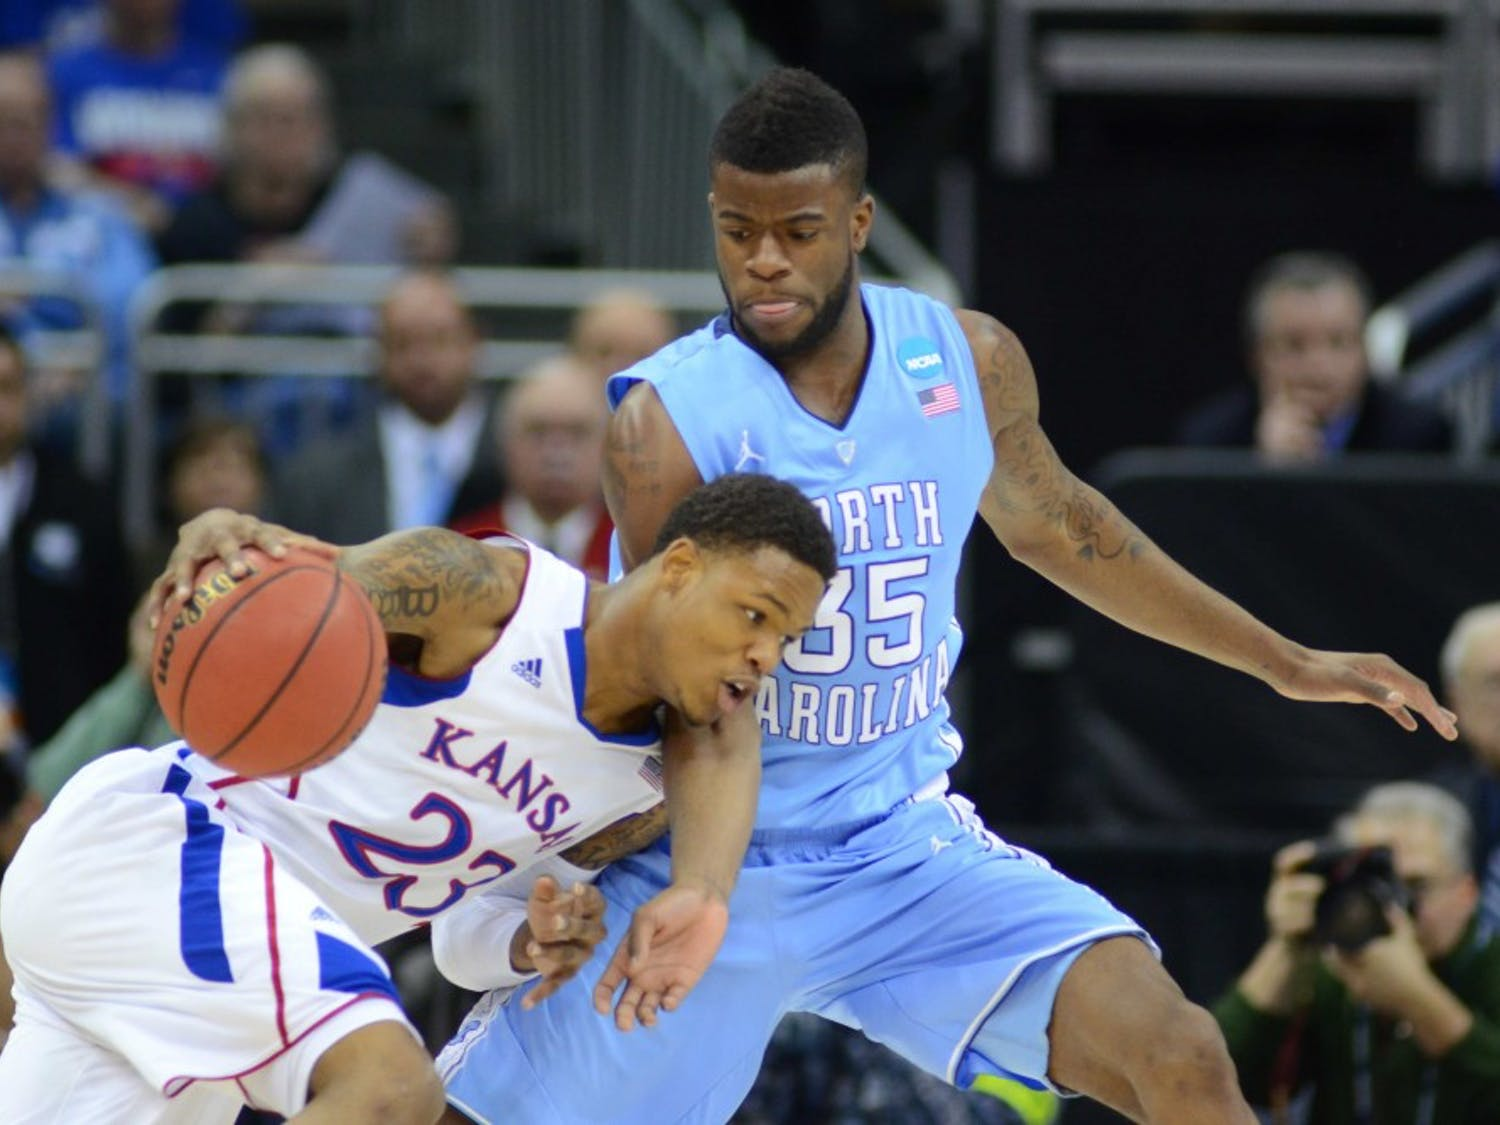 Reggie Bullock (35) defends Ben McLemore (23). McLemore is averages 16.2 points per game, but was held to 2.